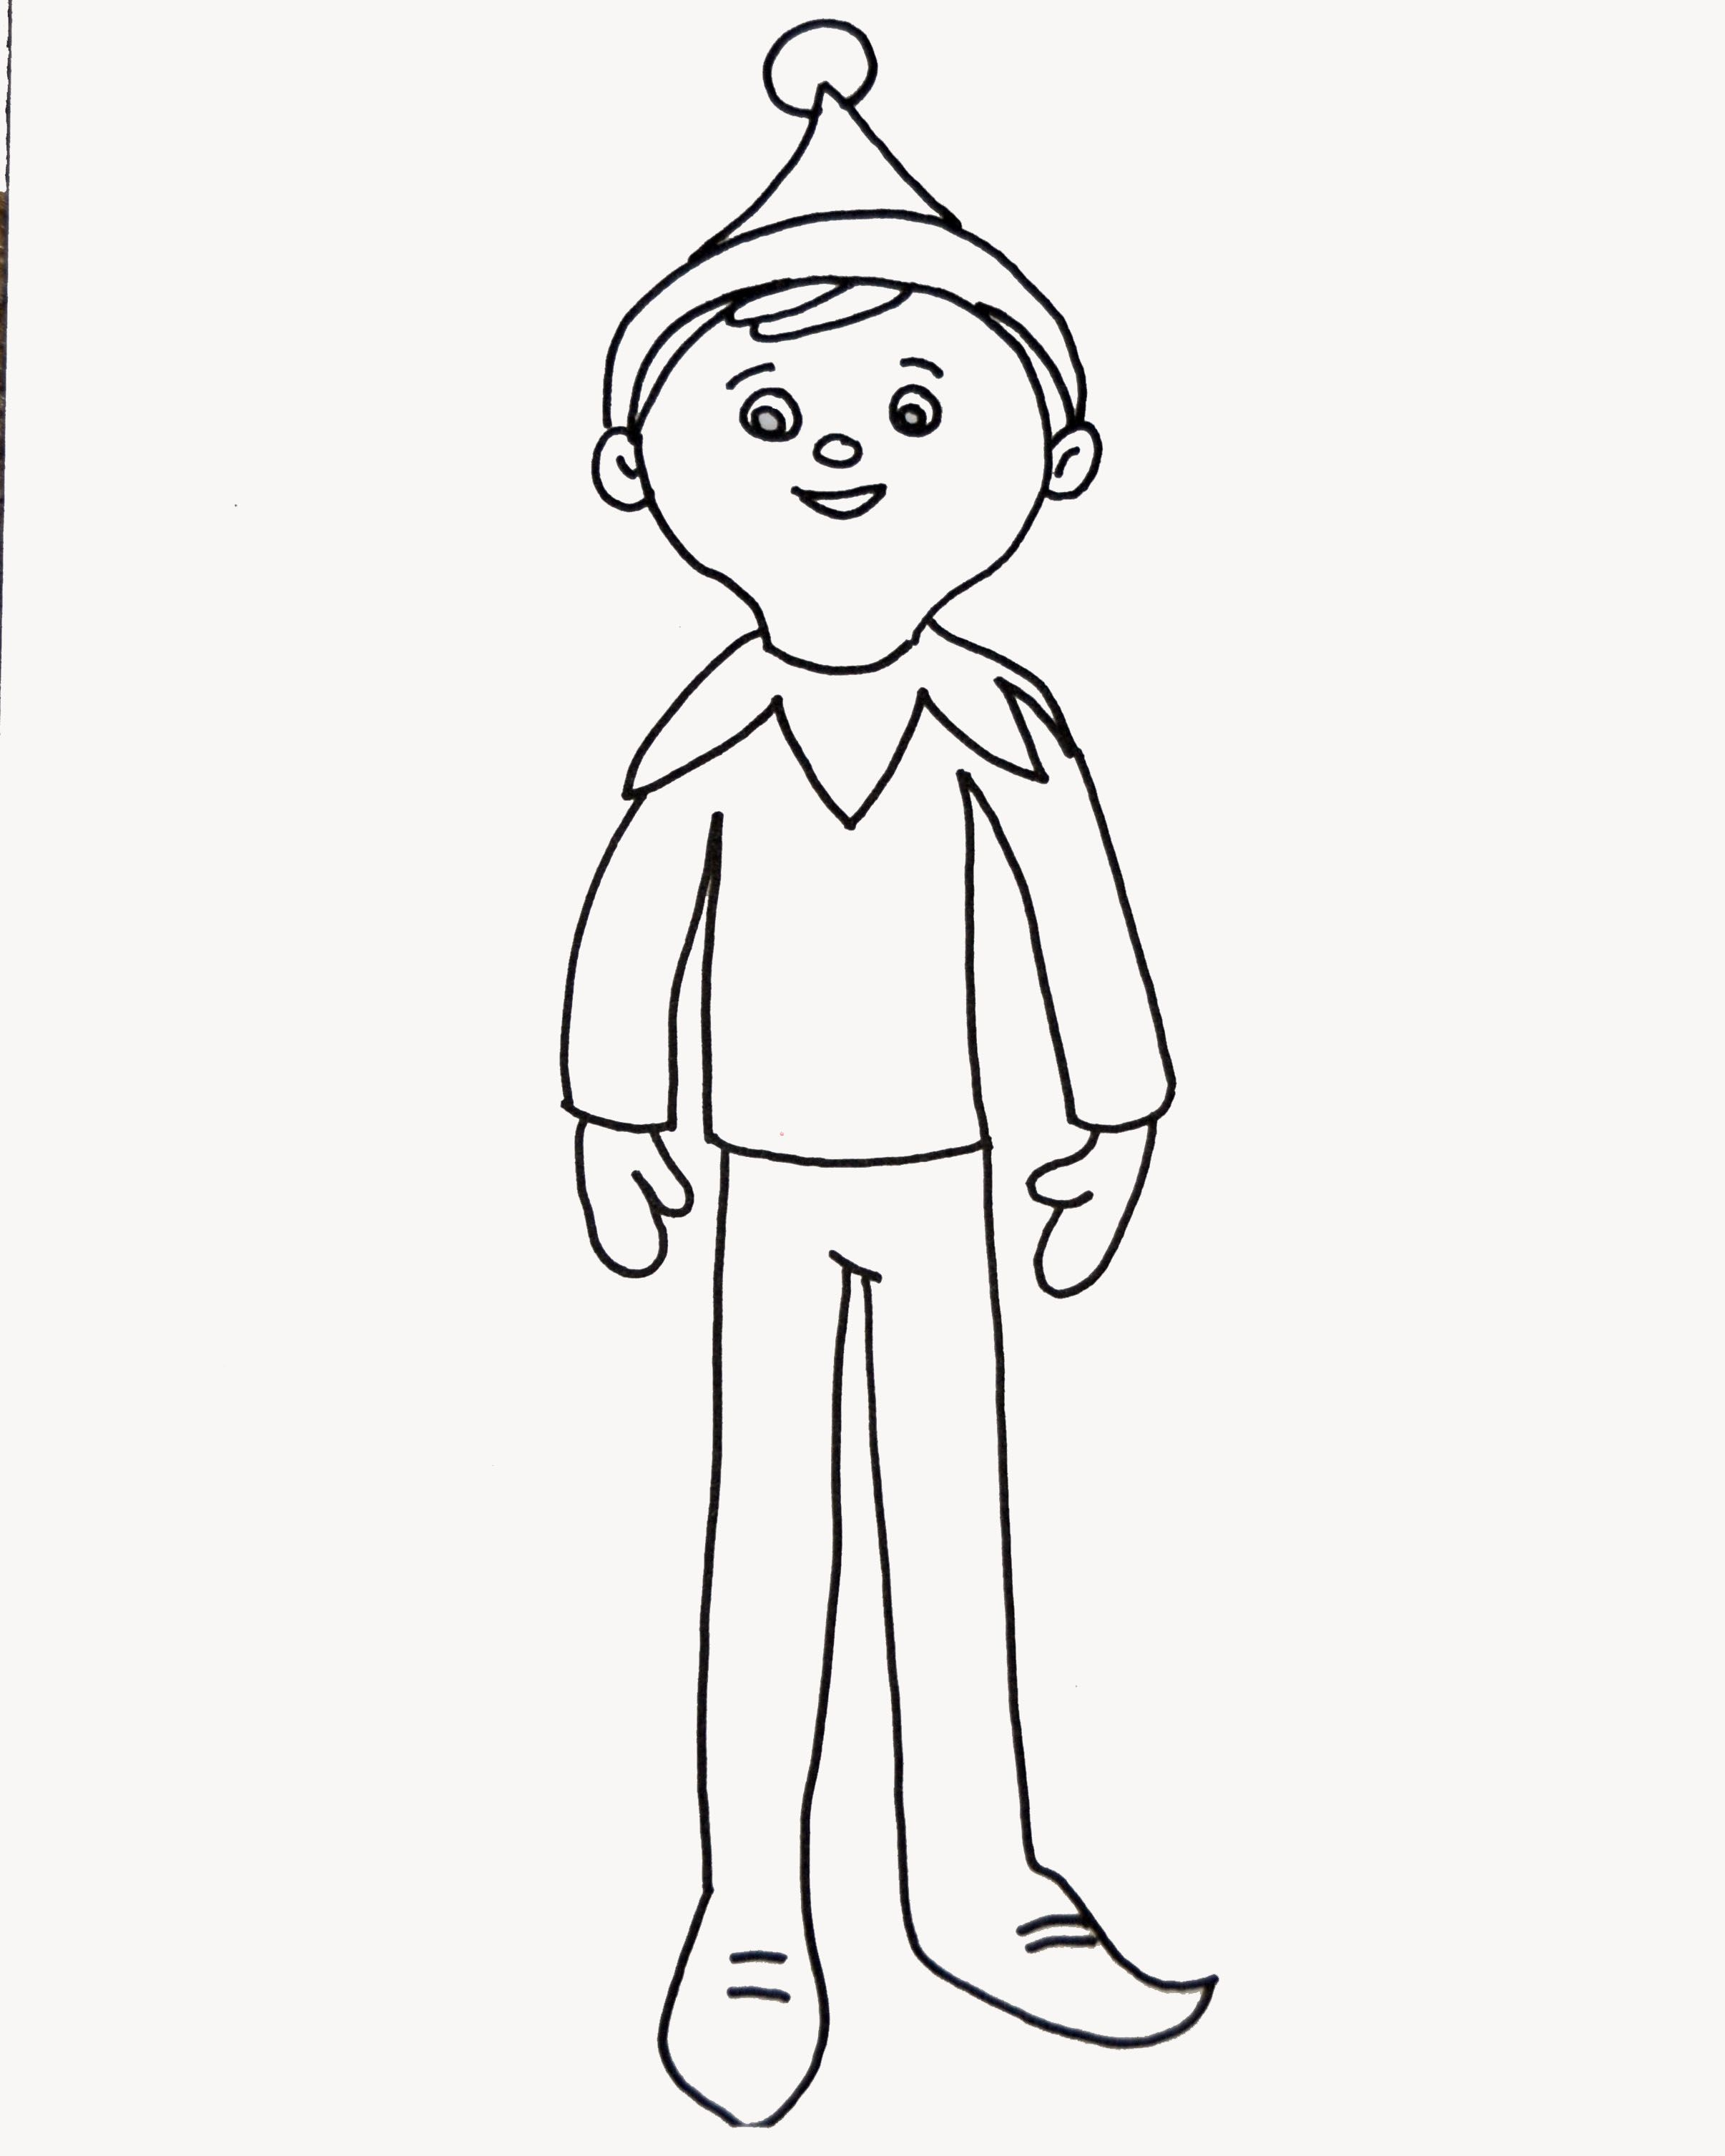 Elf on the shelf coloring page. Elf on Shelf Pinterest